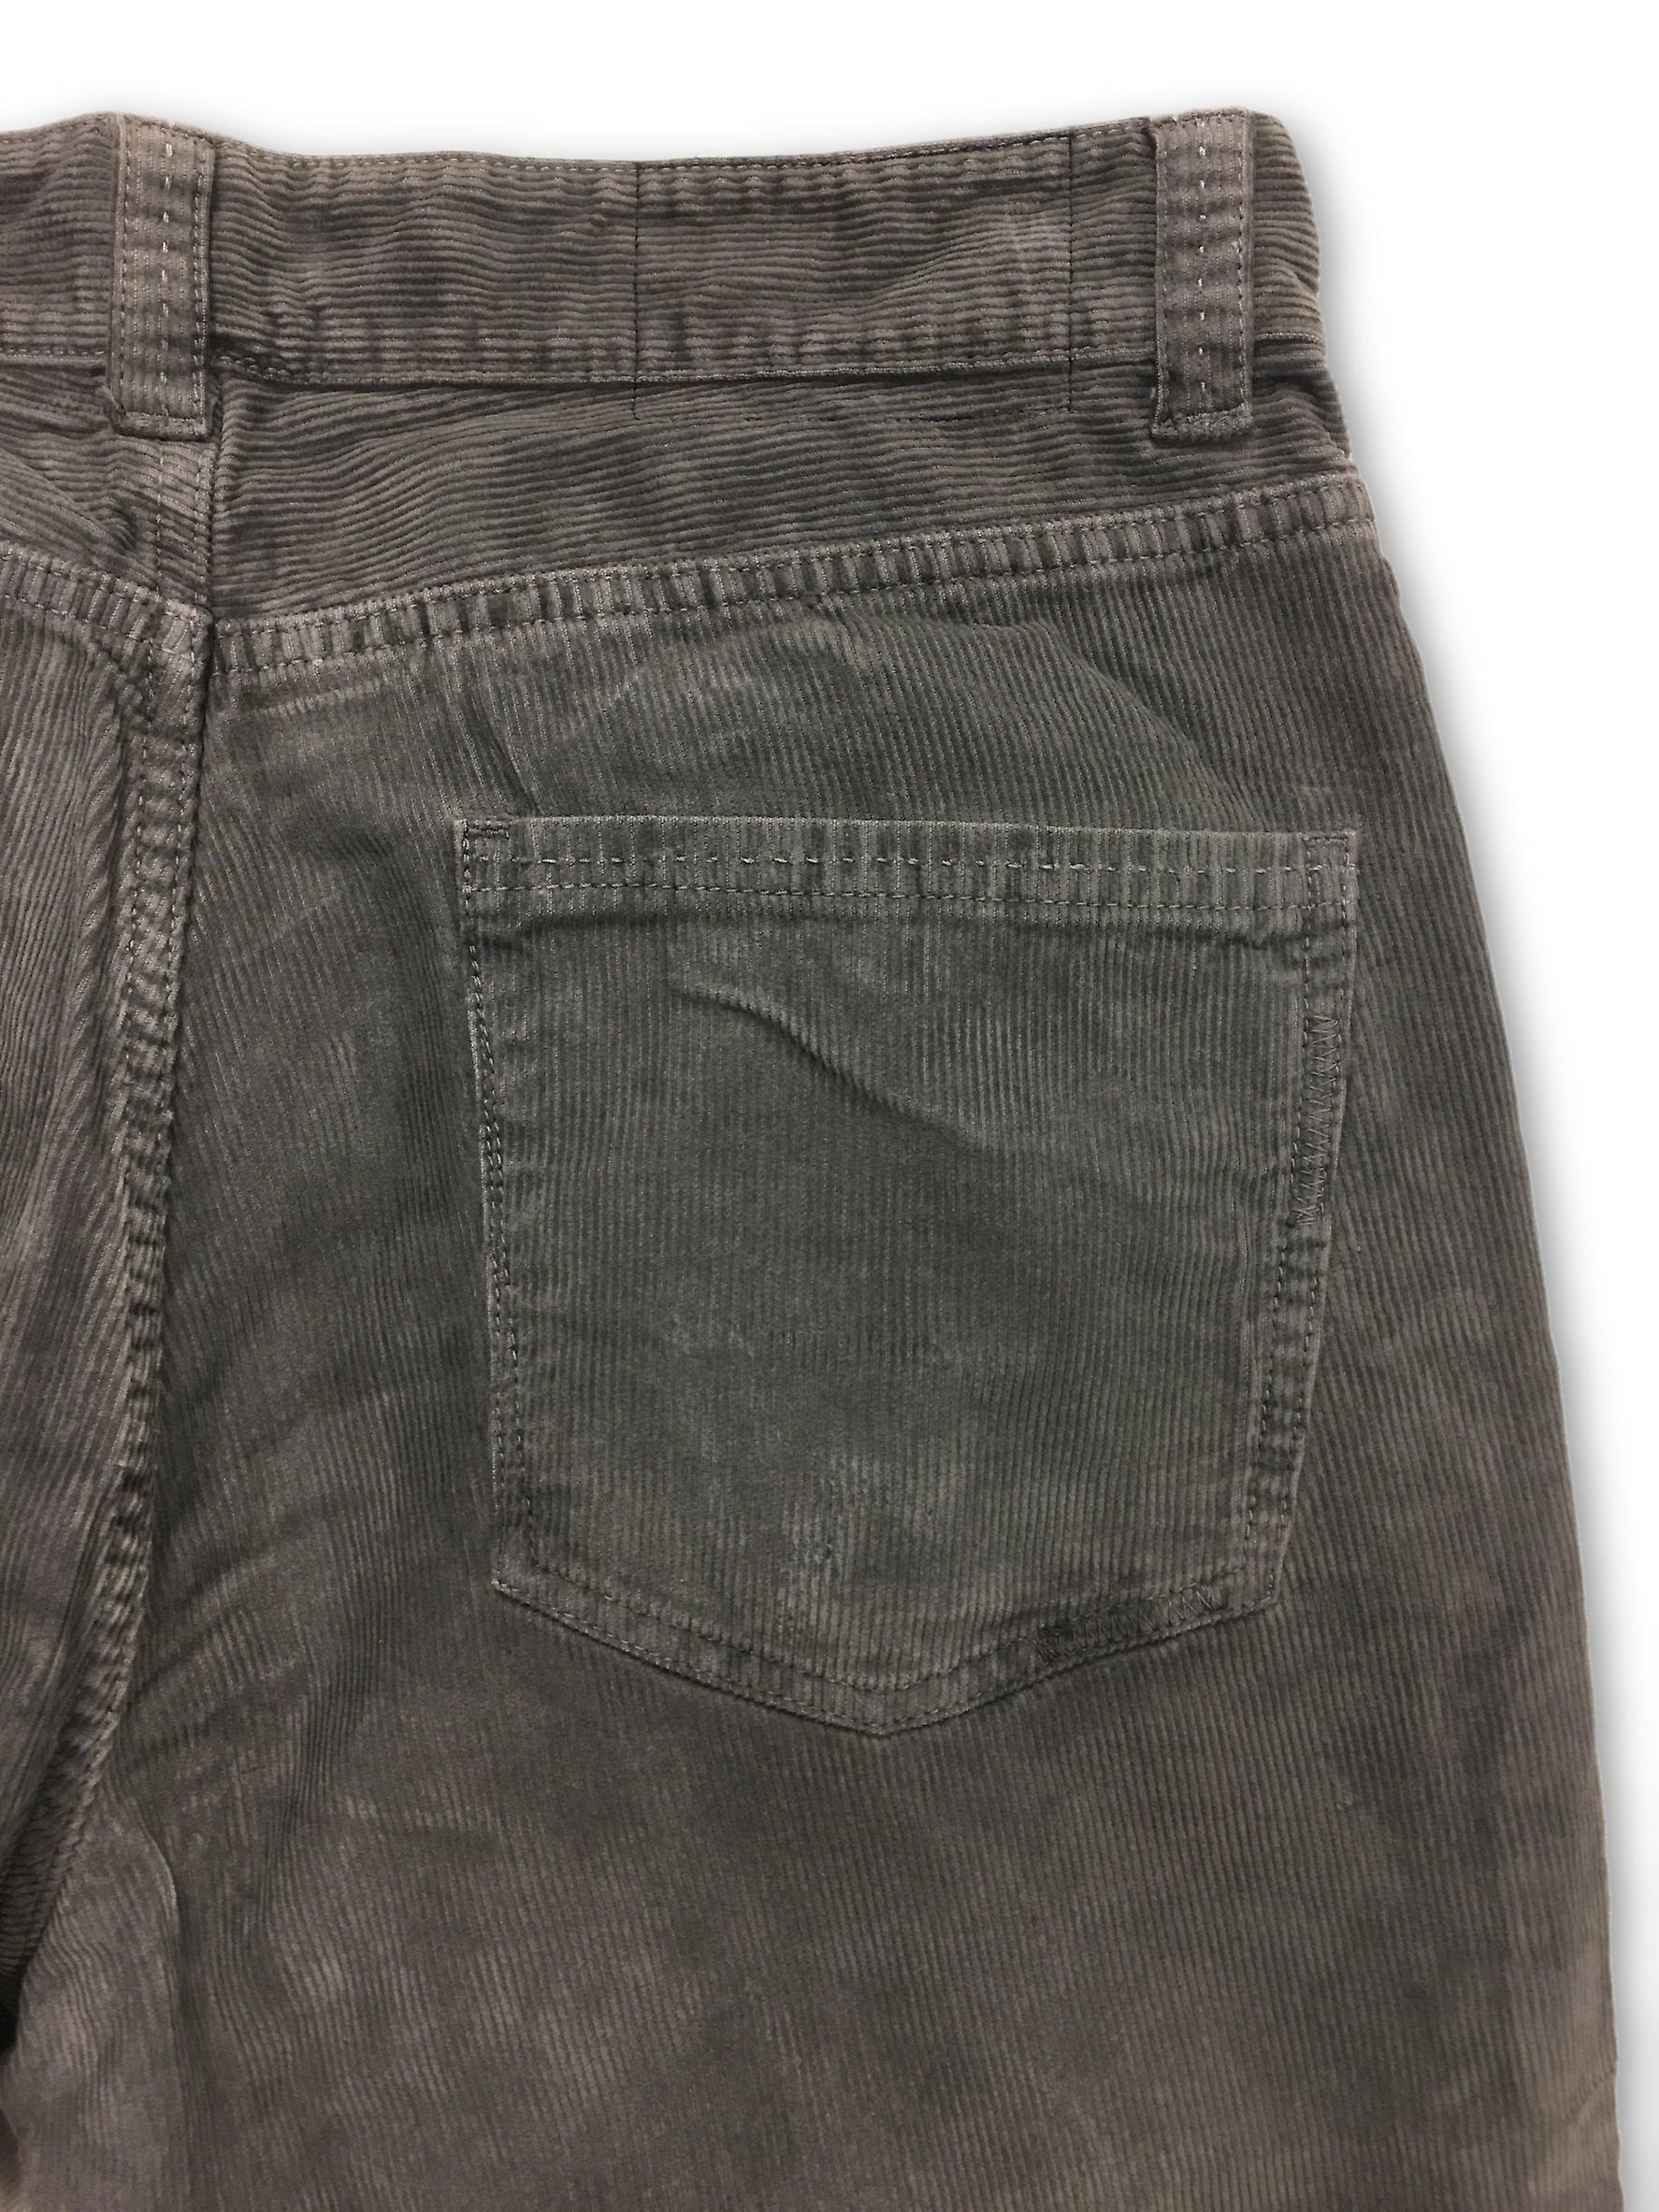 Tailor Vintage cord jeans in grey